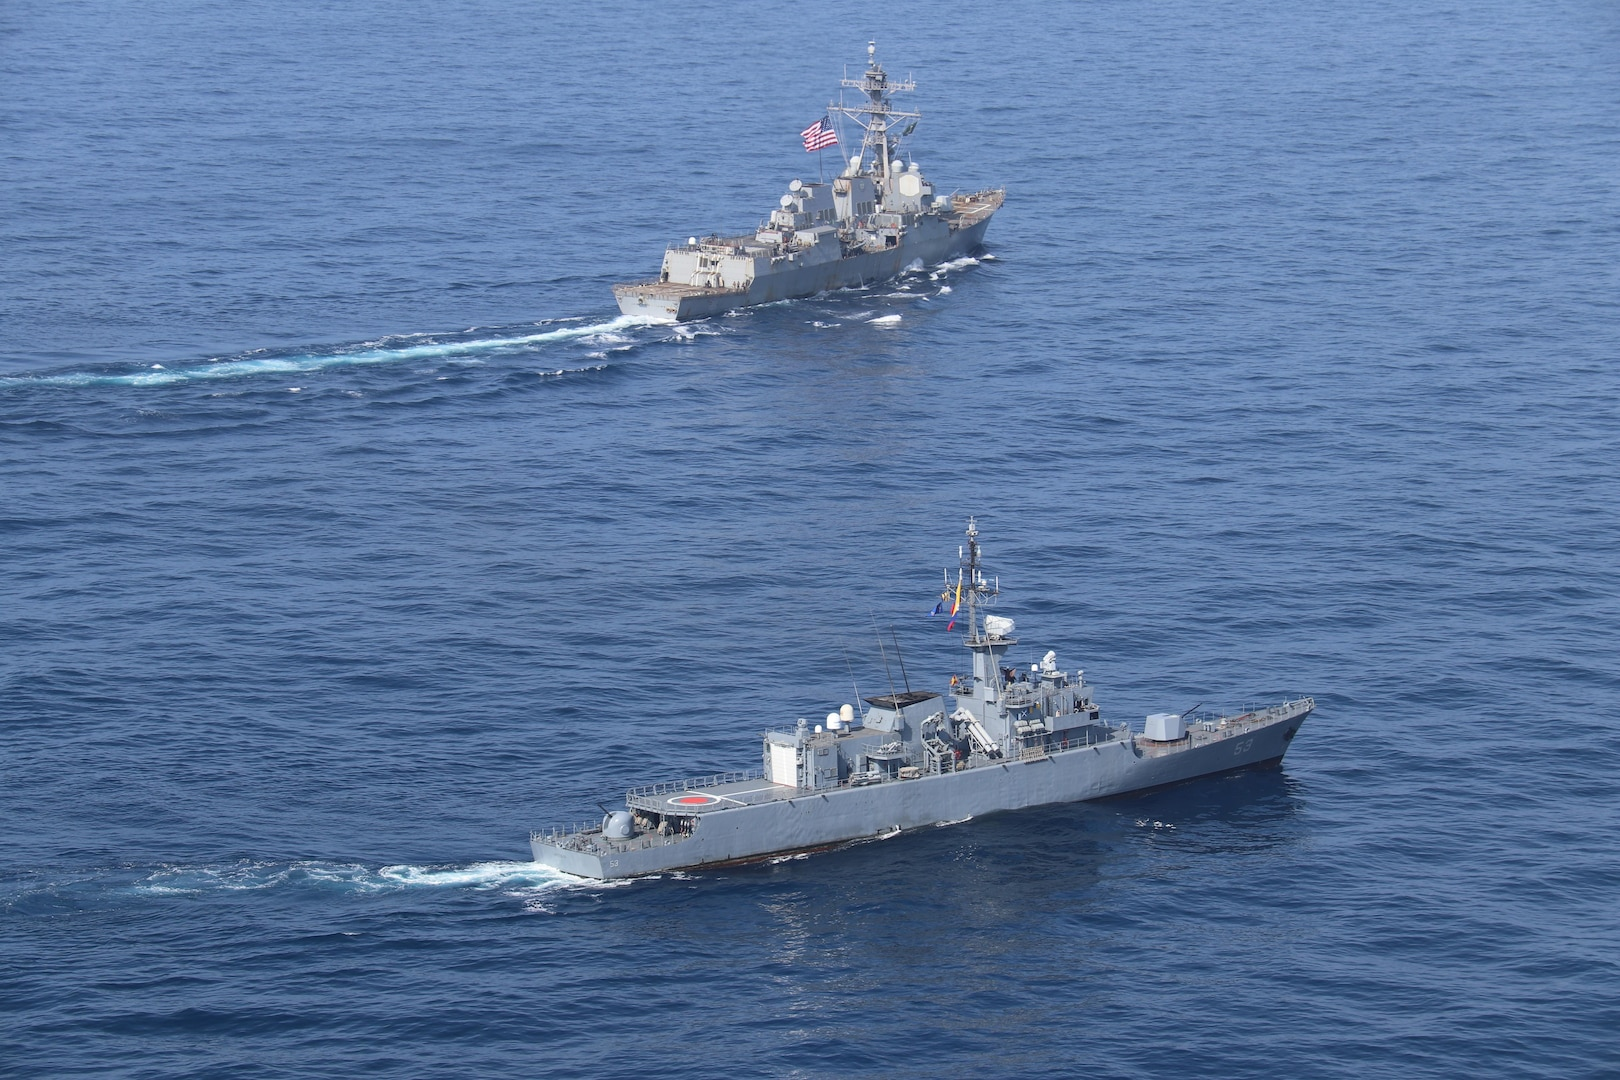 USS James E. Williams (DDG 95) conducts a passing exercise (PASSEX) with the Colombian naval frigate ARC Antioquia (FM-53) in the Caribbean Sea.